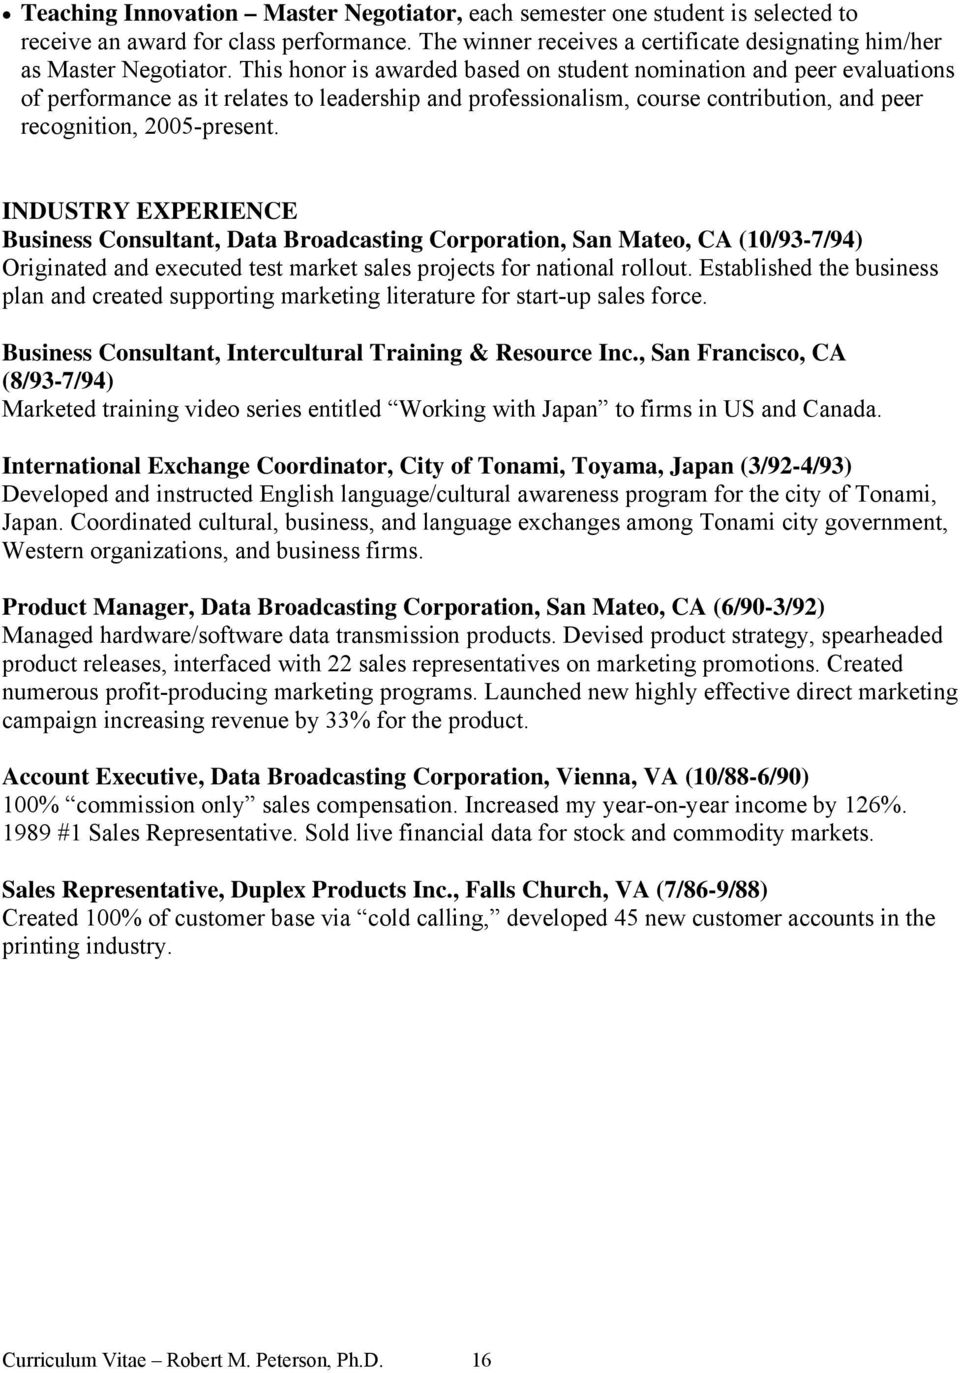 INDUSTRY EXPERIENCE Business Consultant, Data Broadcasting Corporation, San Mateo, CA (10/93-7/94) Originated and executed test market sales projects for national rollout.